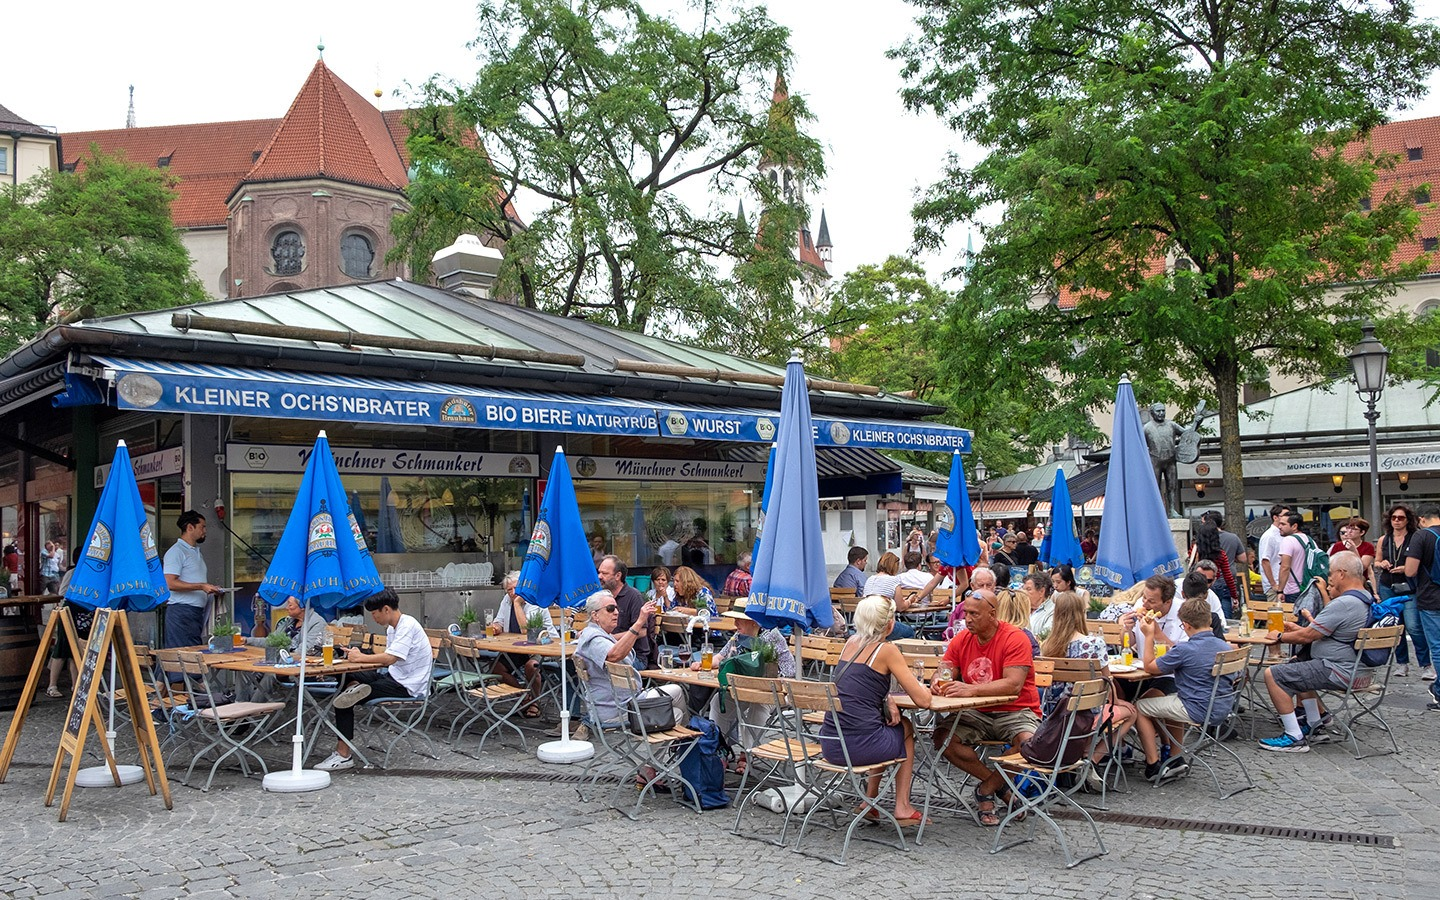 The Viktualienmarkt outdoor food market and beer garden